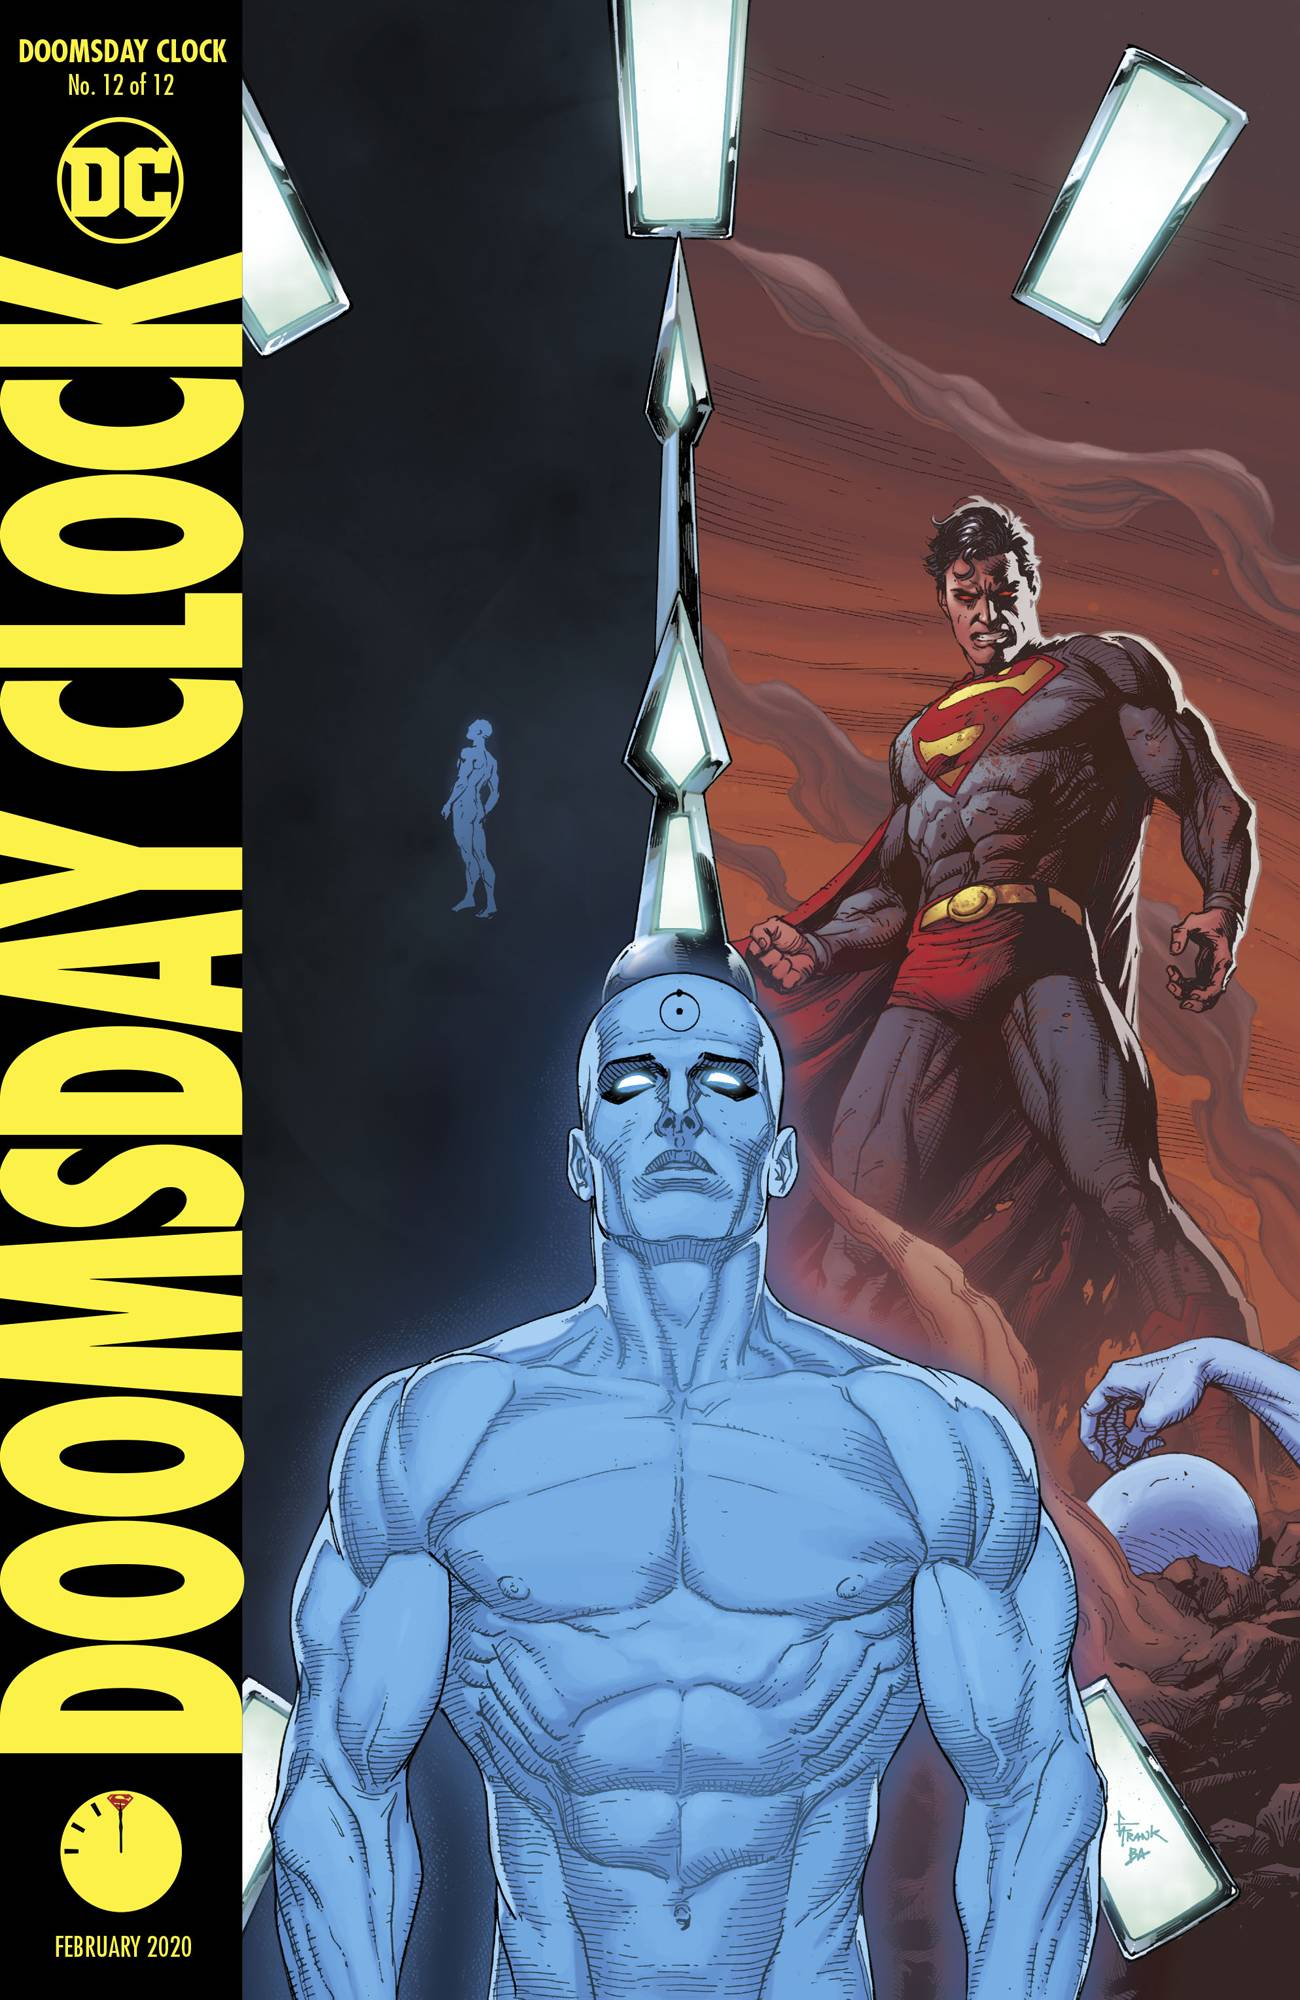 OF 12 DOOMSDAY CLOCK #5 VARIANT EDITION